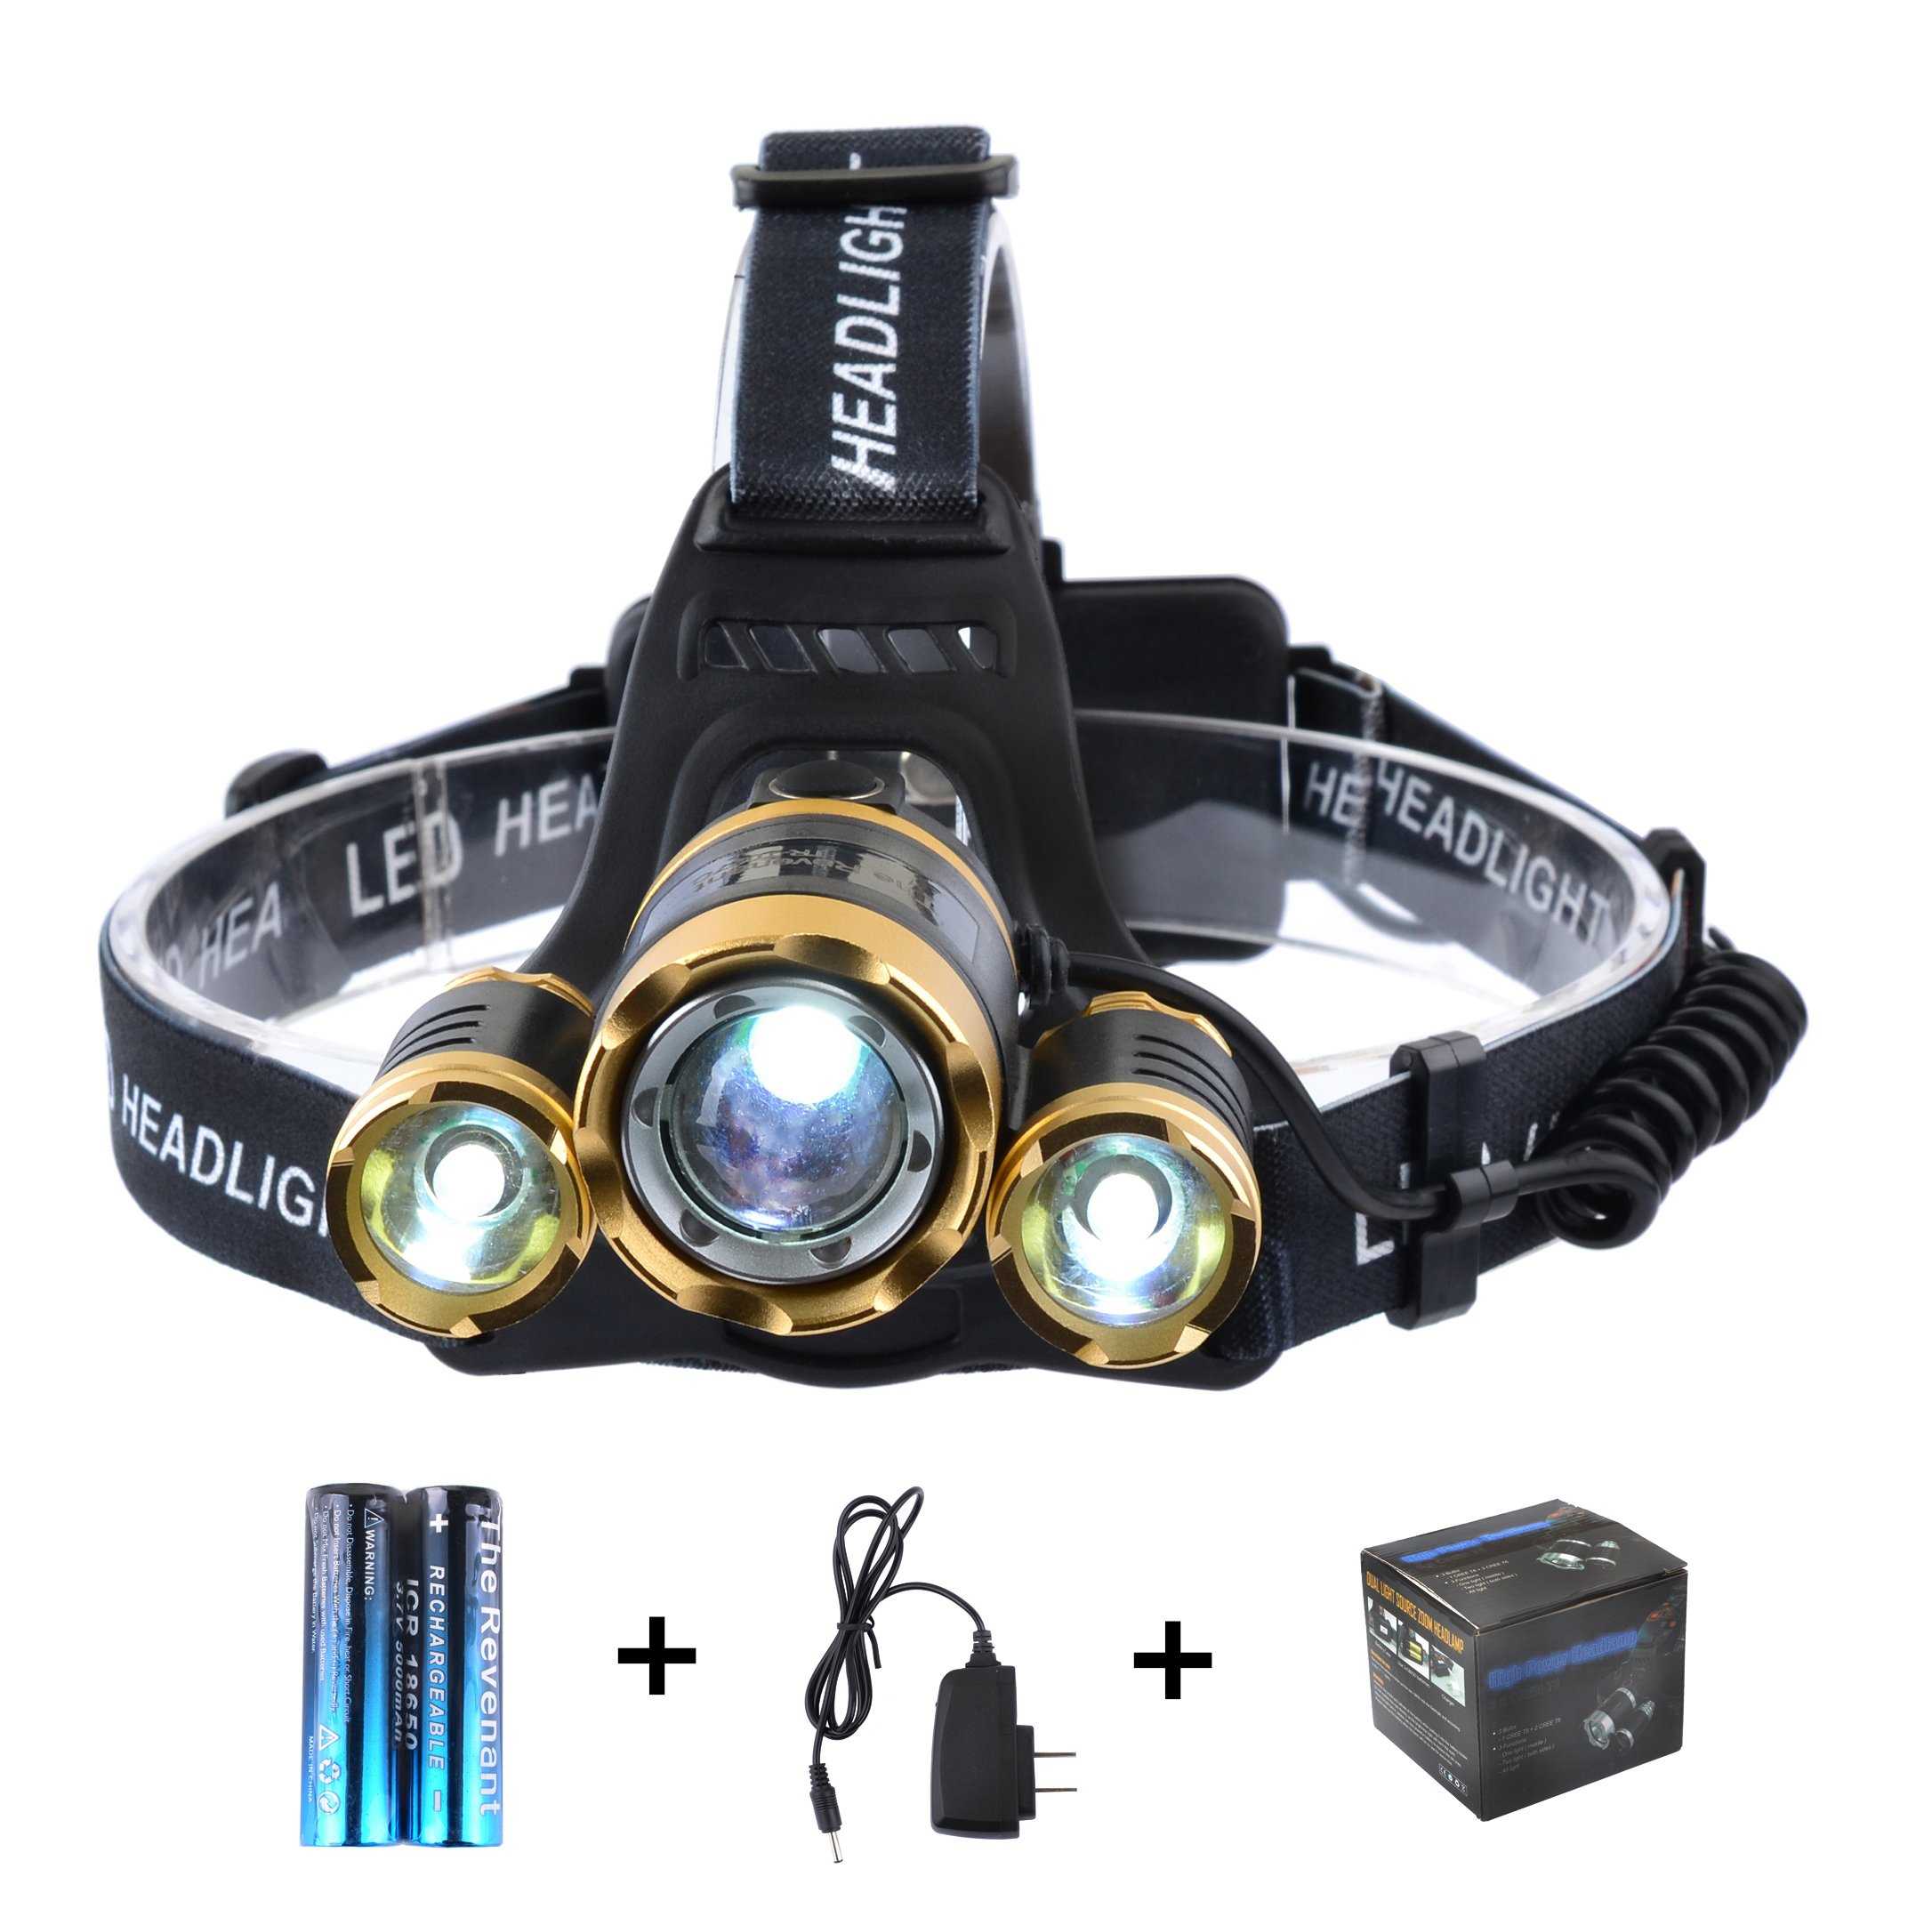 The Revenant LED Headlamp, Super Bright Headlight 5000 Lumens 4 Modes 3 CREE XM-L T6 Zooomable Waterproof, Rechargeable Battery & Charger